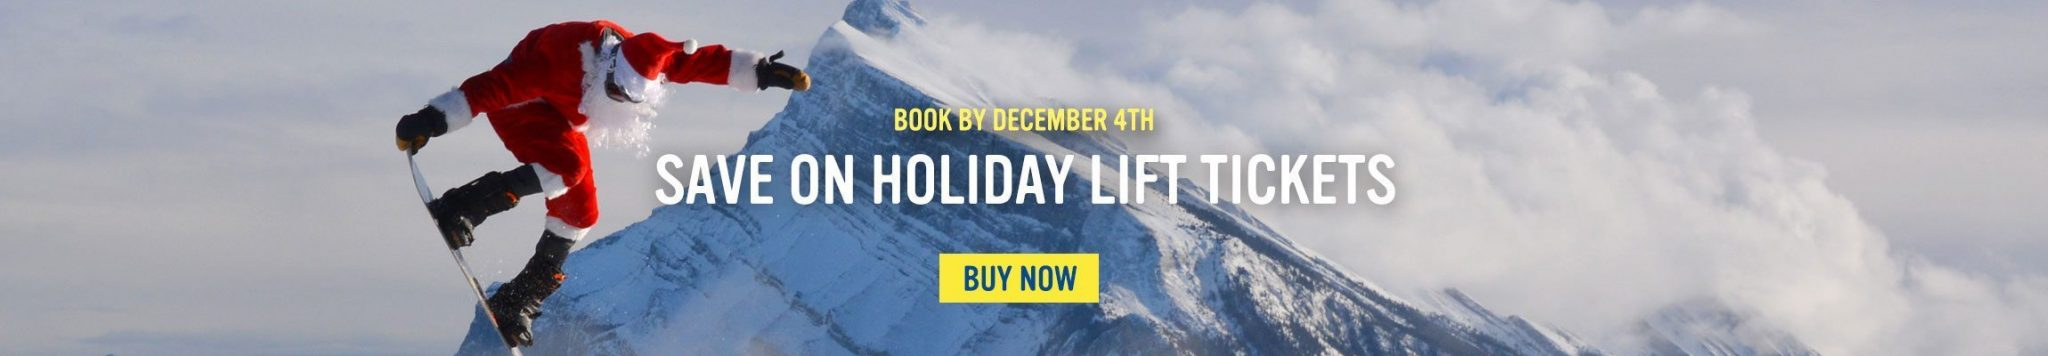 Save on holiday lift tickets